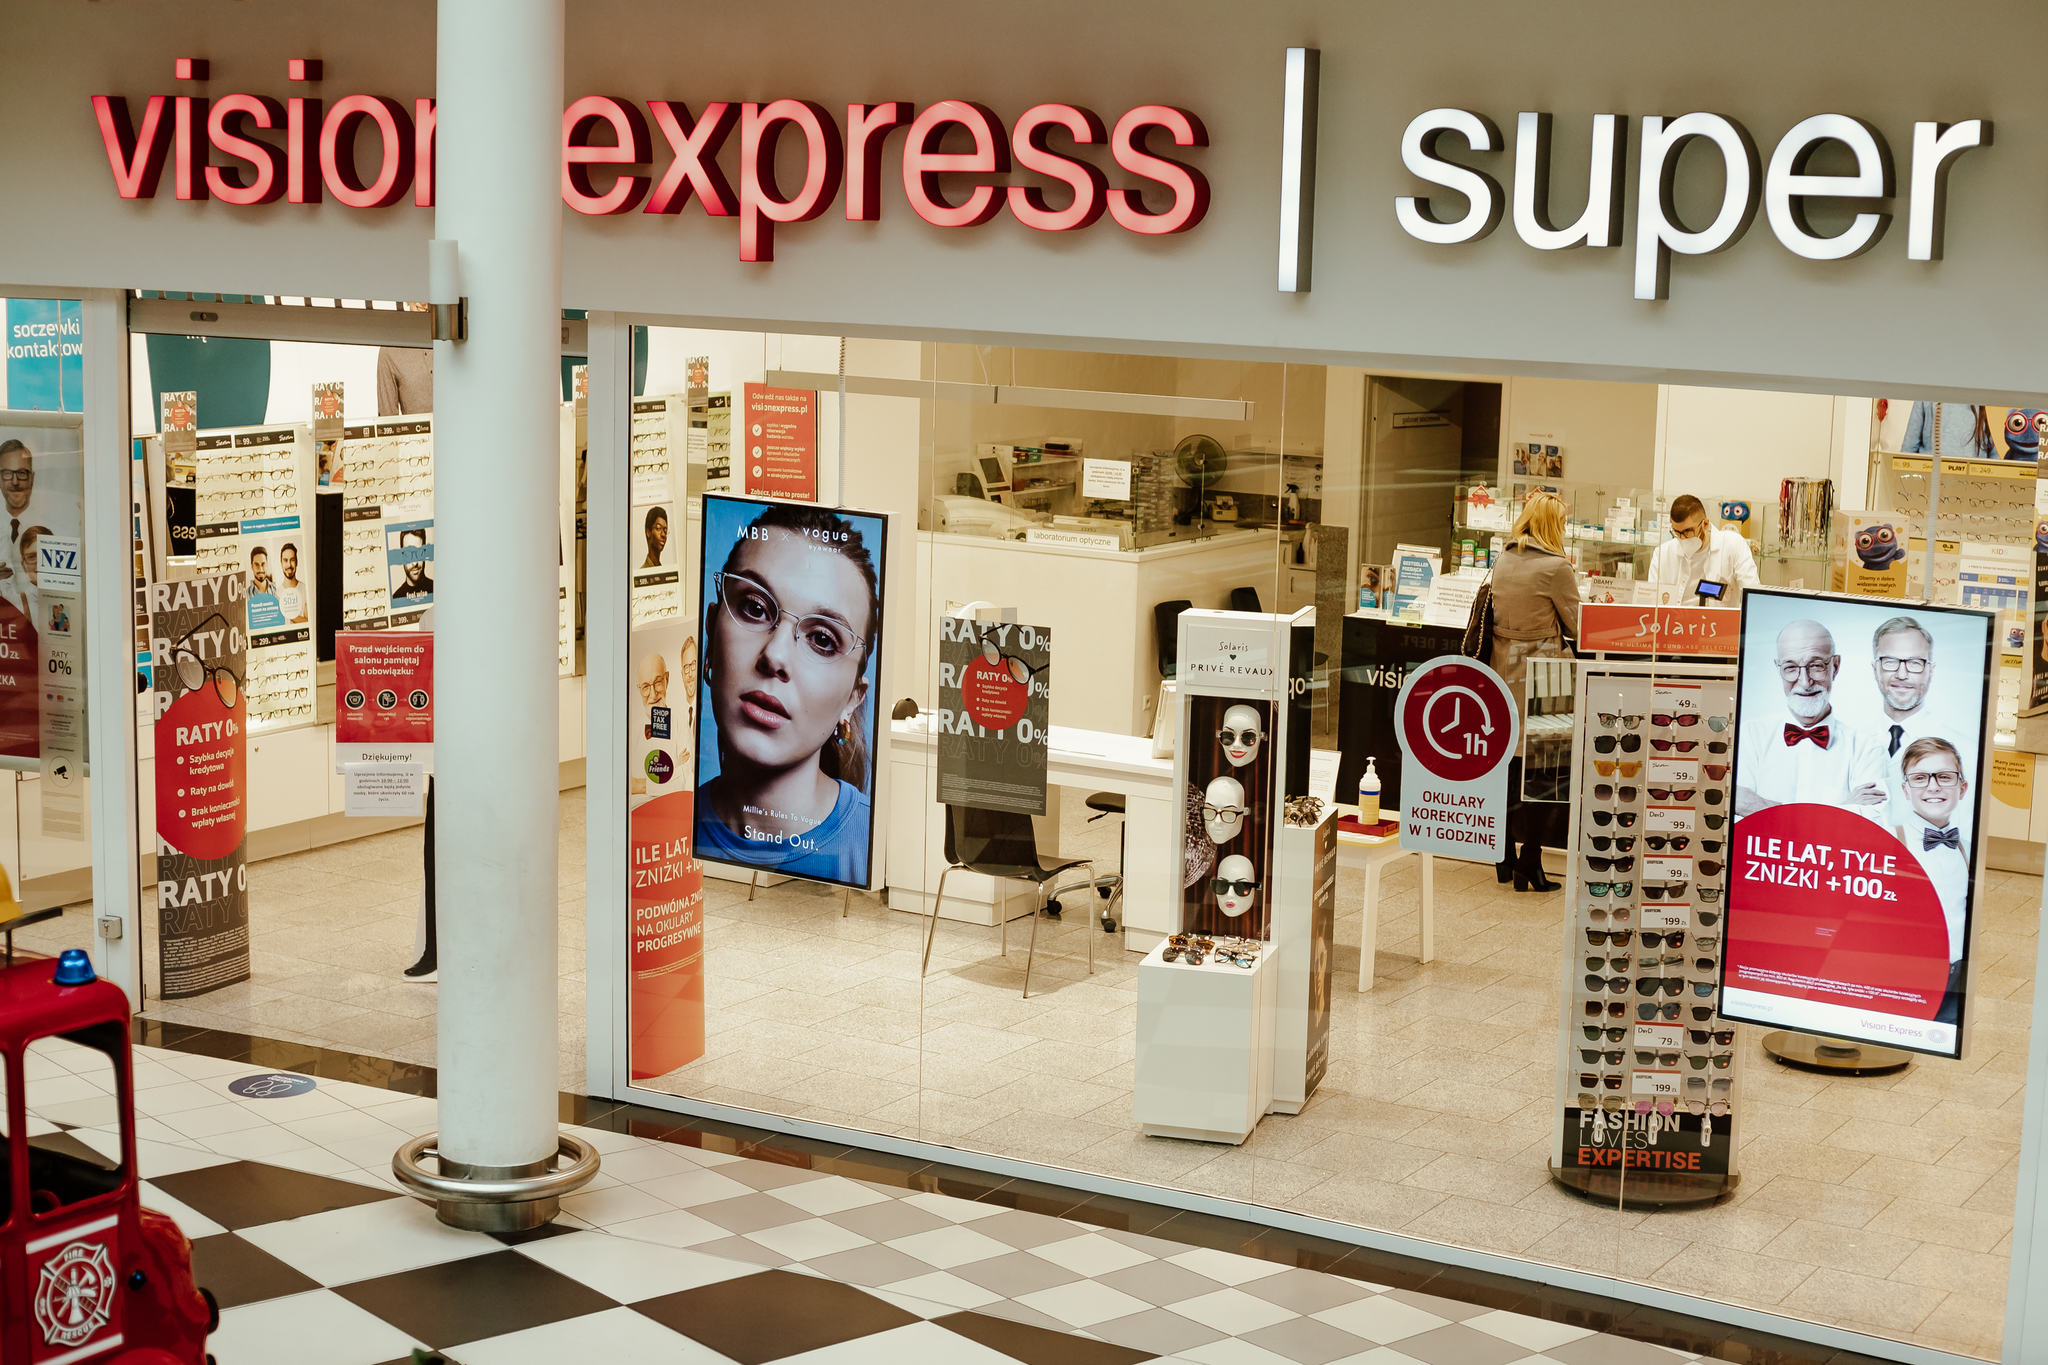 Digital Signage Vision Express